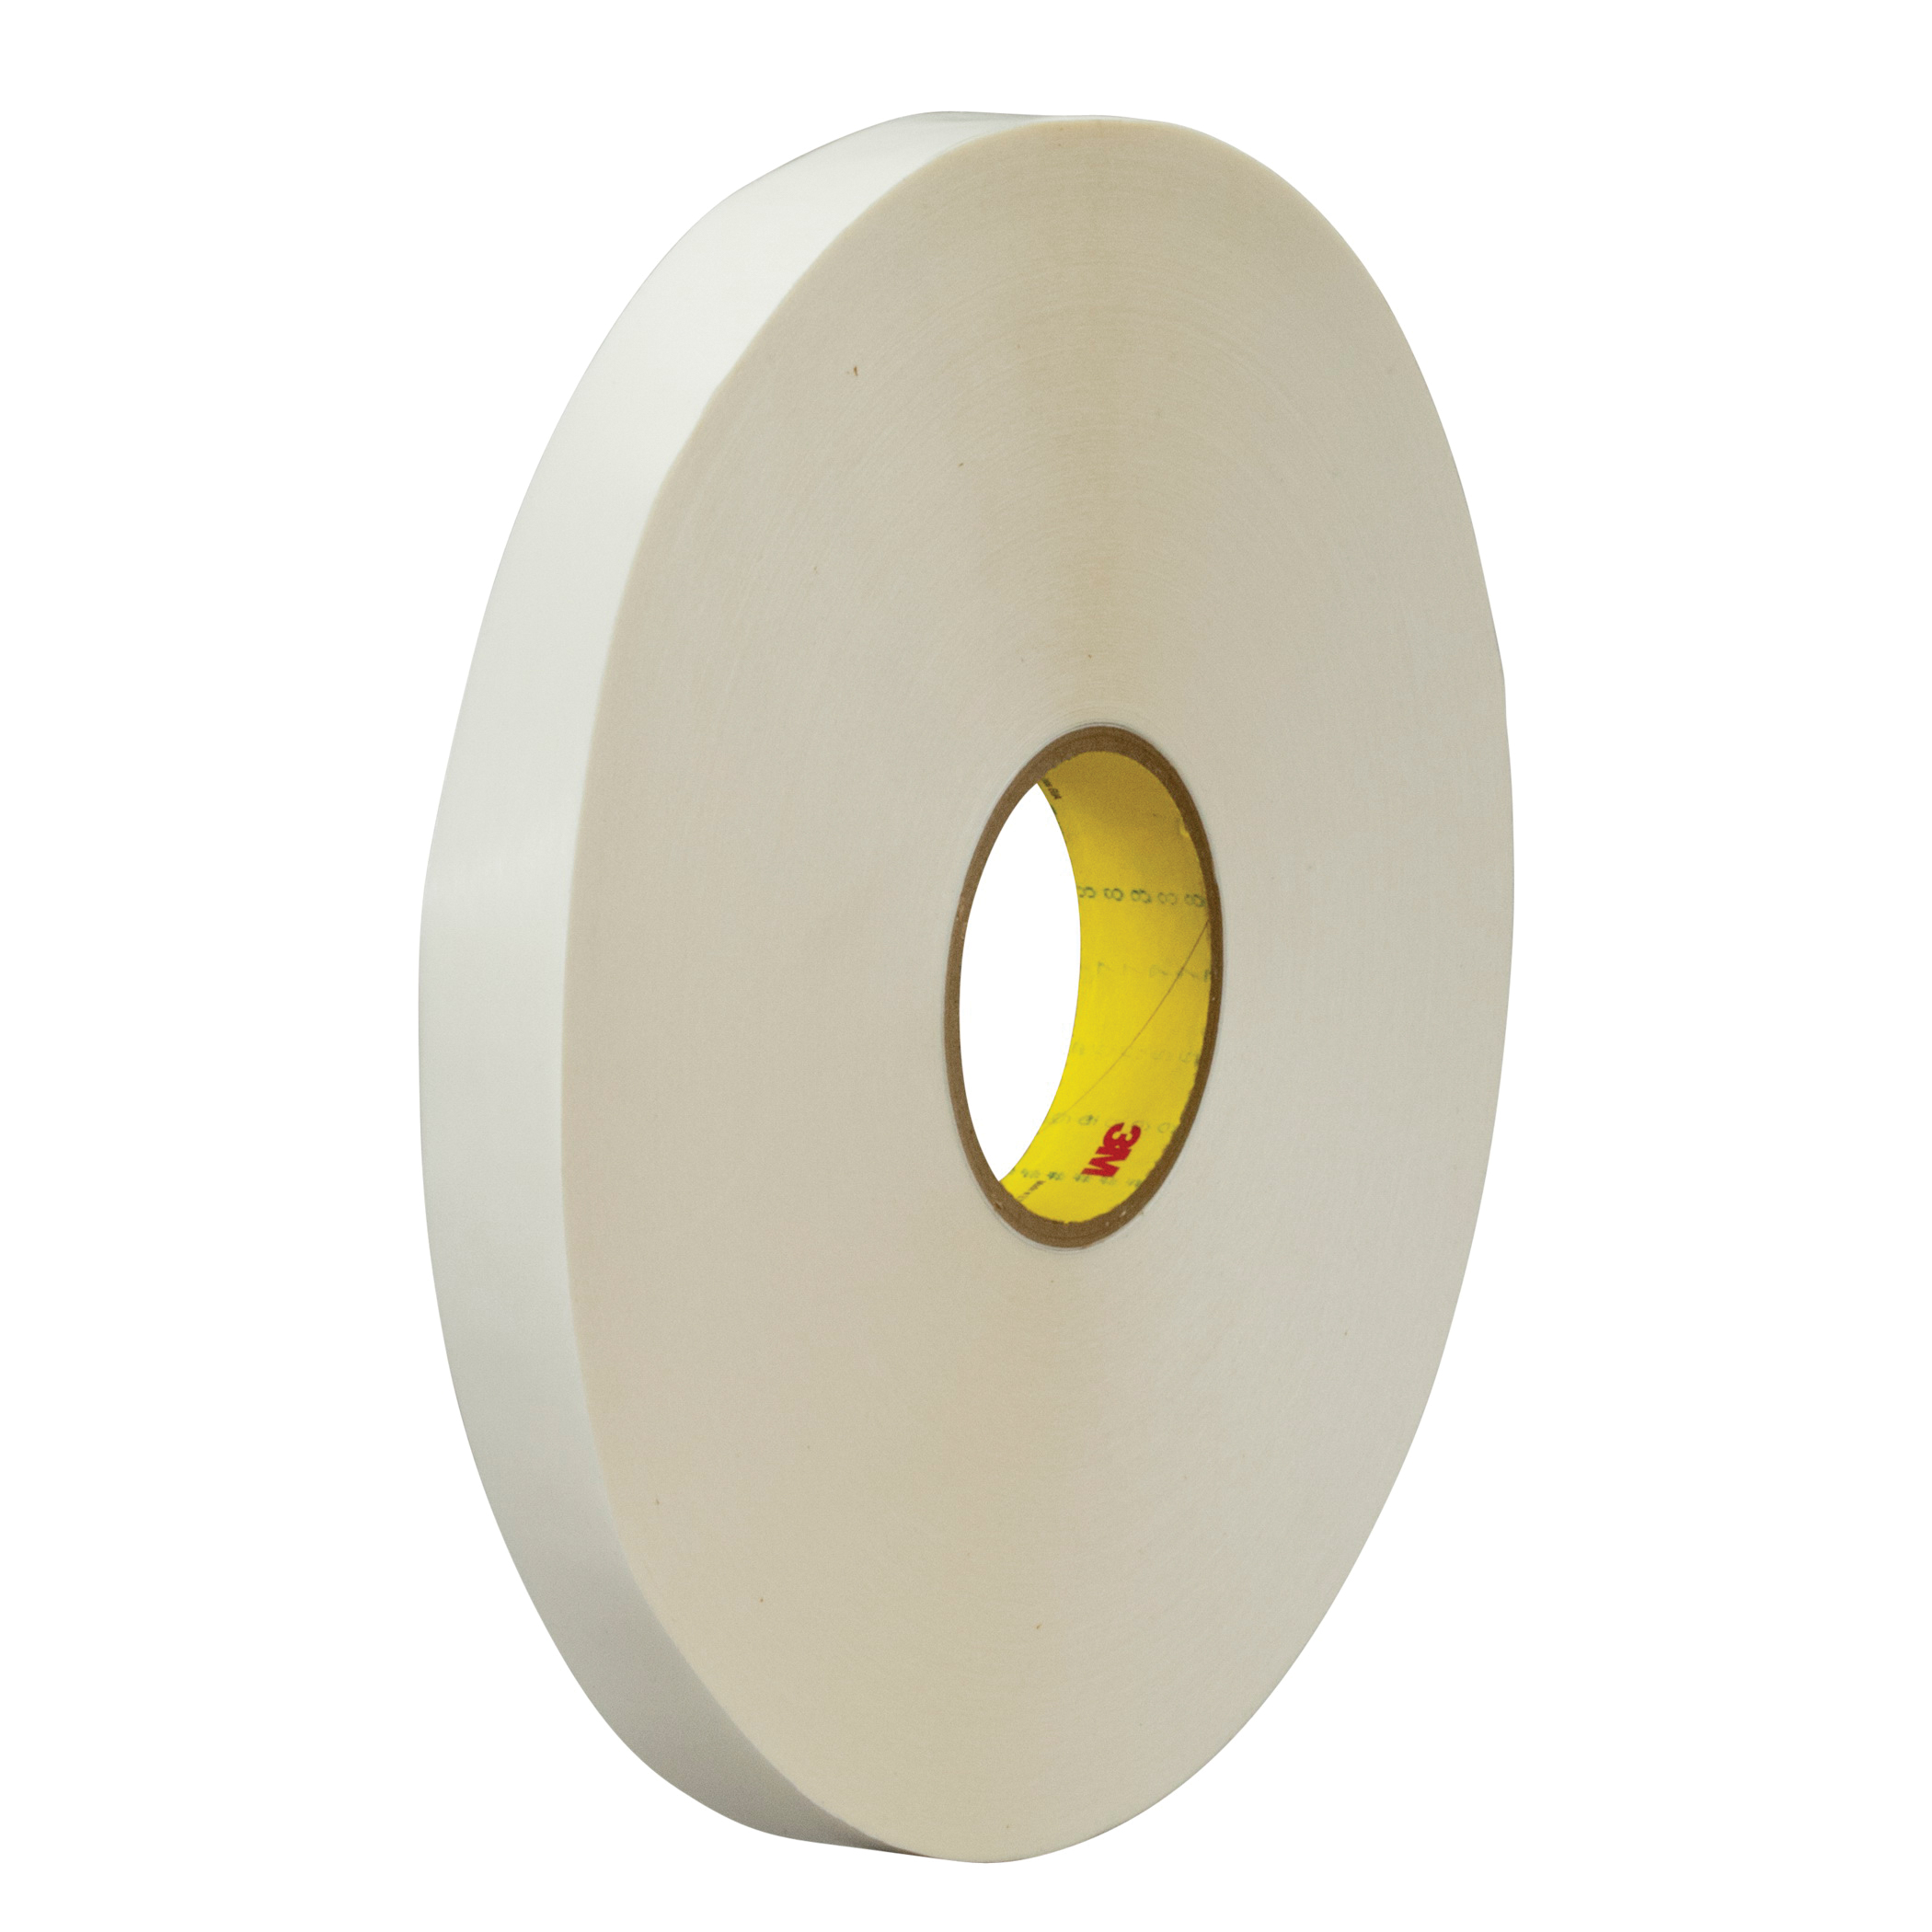 3M™ 021200-24370 Double Coated Tape, 60 yd L x 1 in W, 4 mil THK, 400 Acrylic Adhesive, Polypropylene Backing, Clear